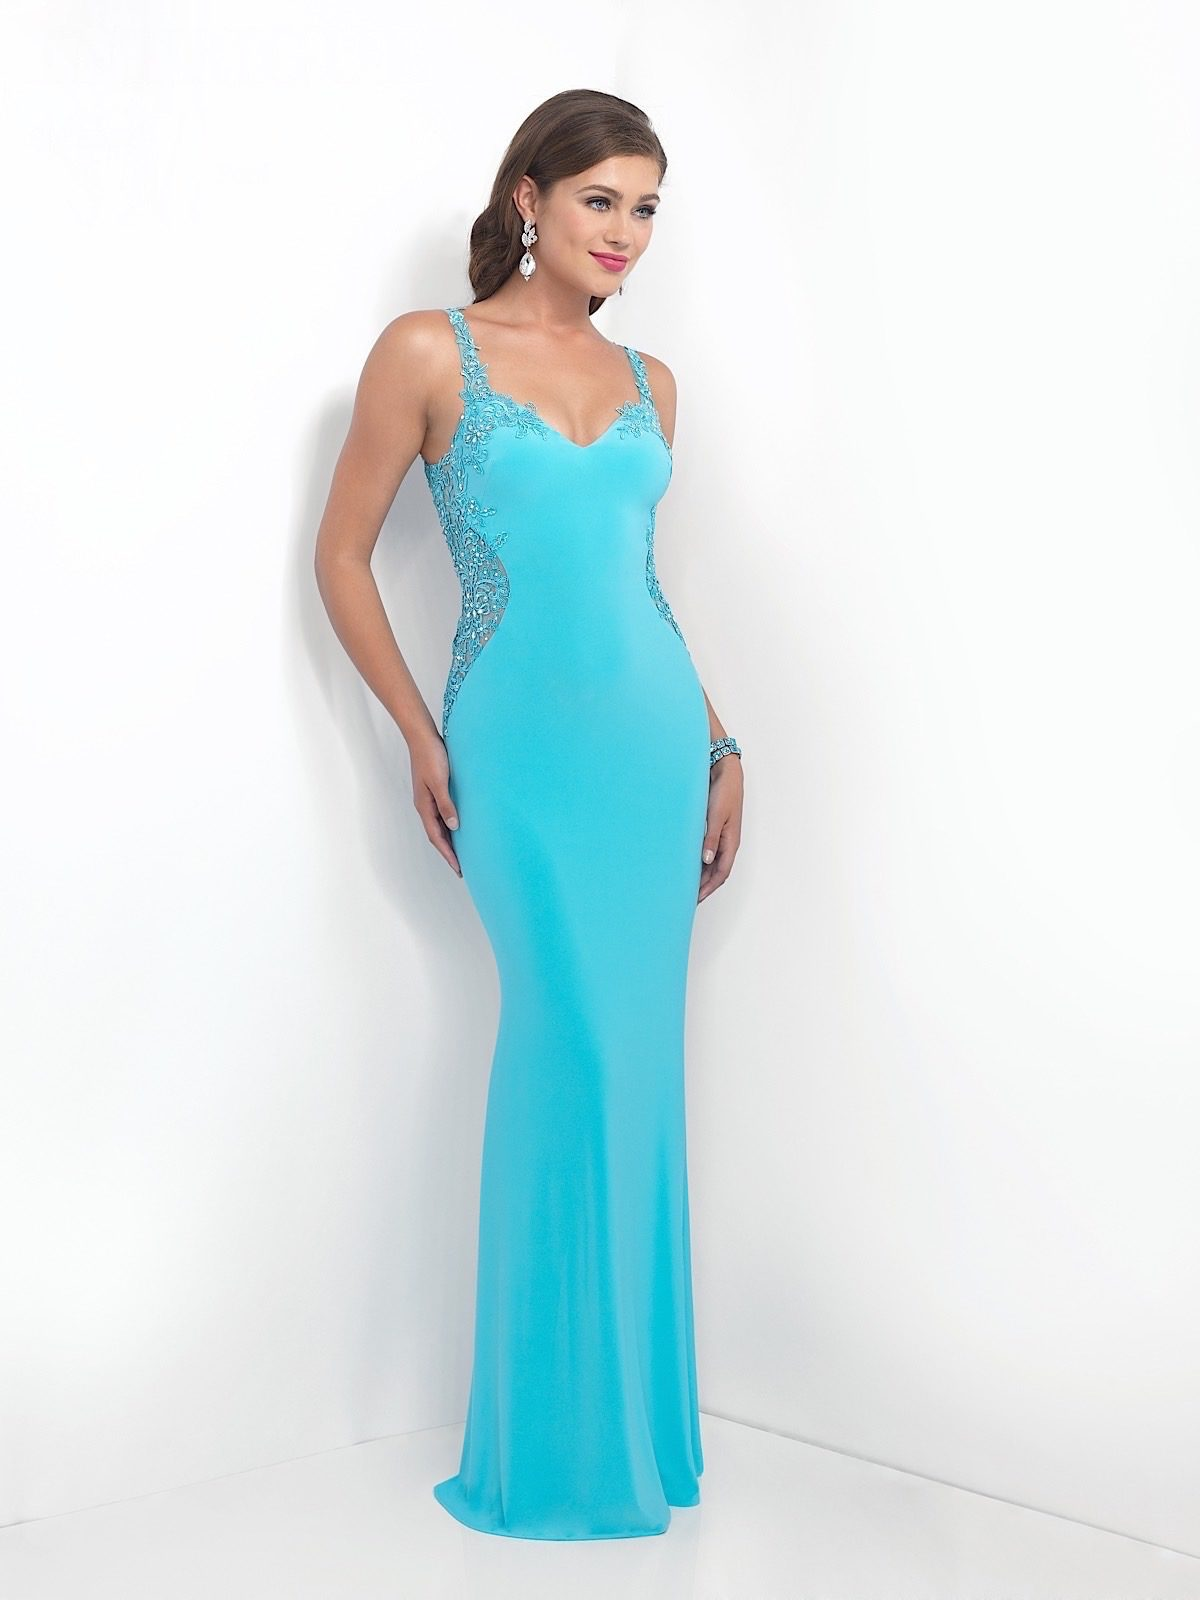 Formal Gowns Gold Coast | Formal Wear Collection - The Bridal Company